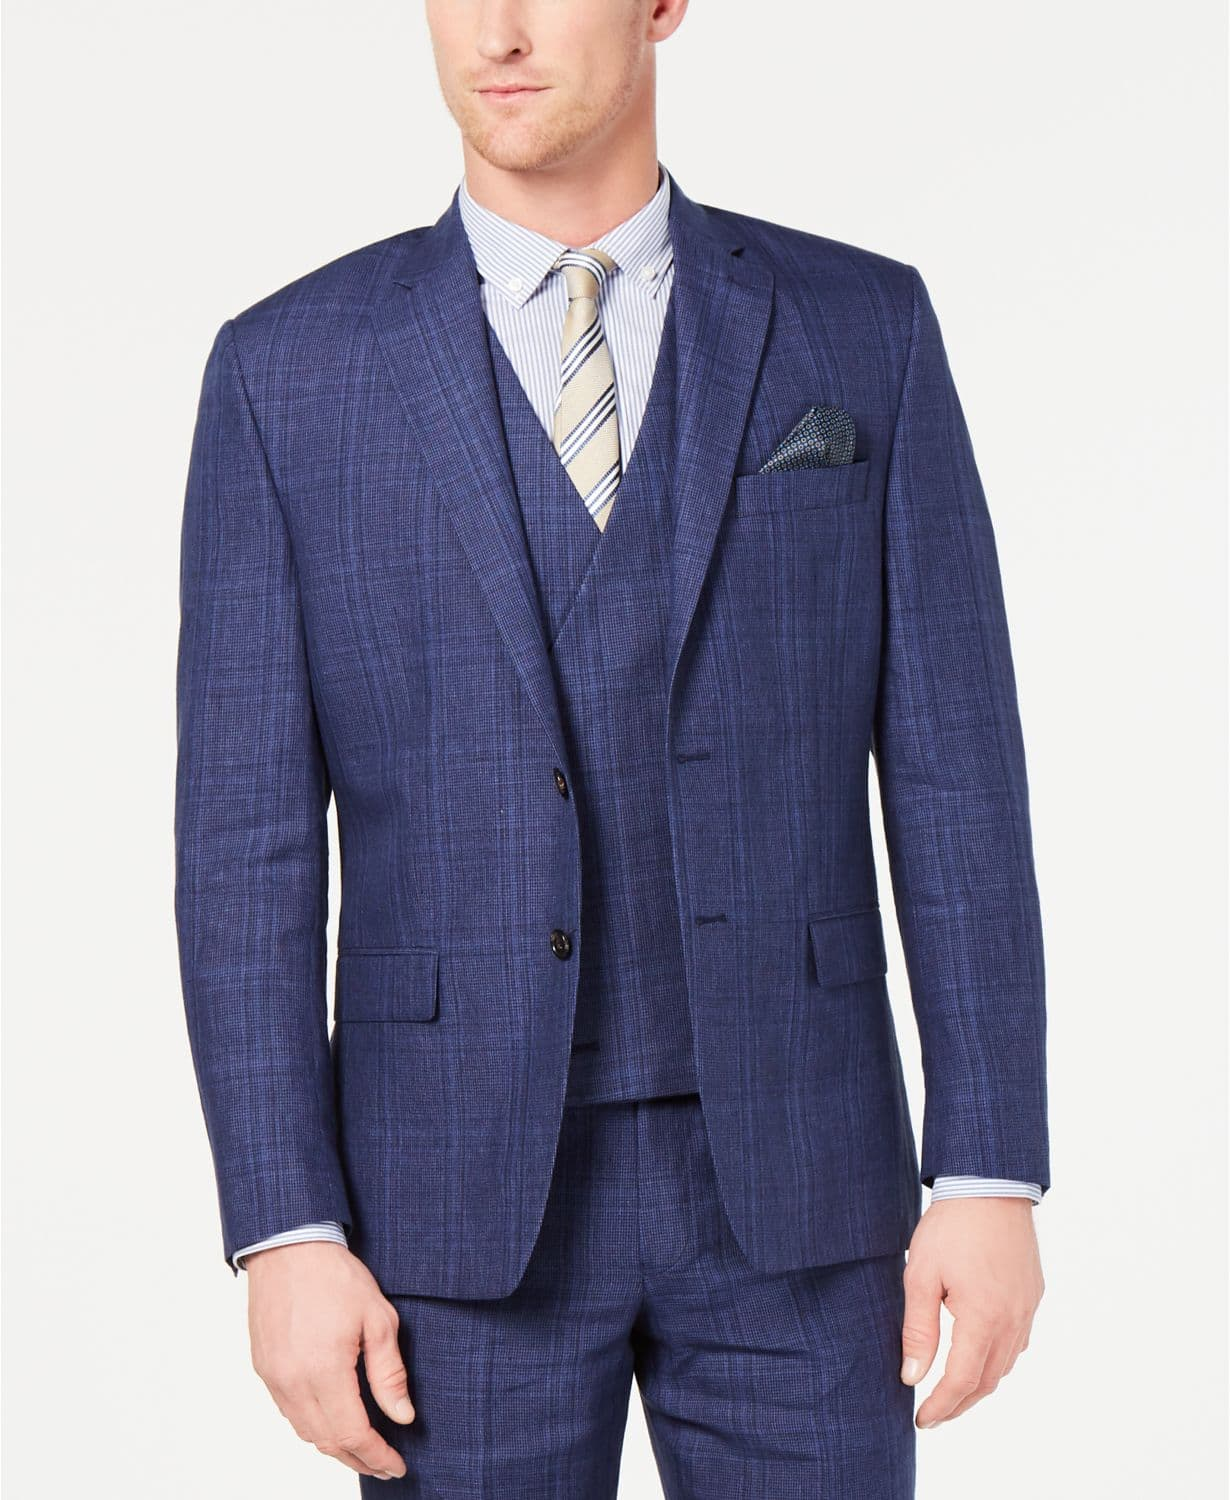 Men's Lauren Ralph Lauren Several Ultraflex Classic-Fit Wool Jackets $40 and above with Free Shipping